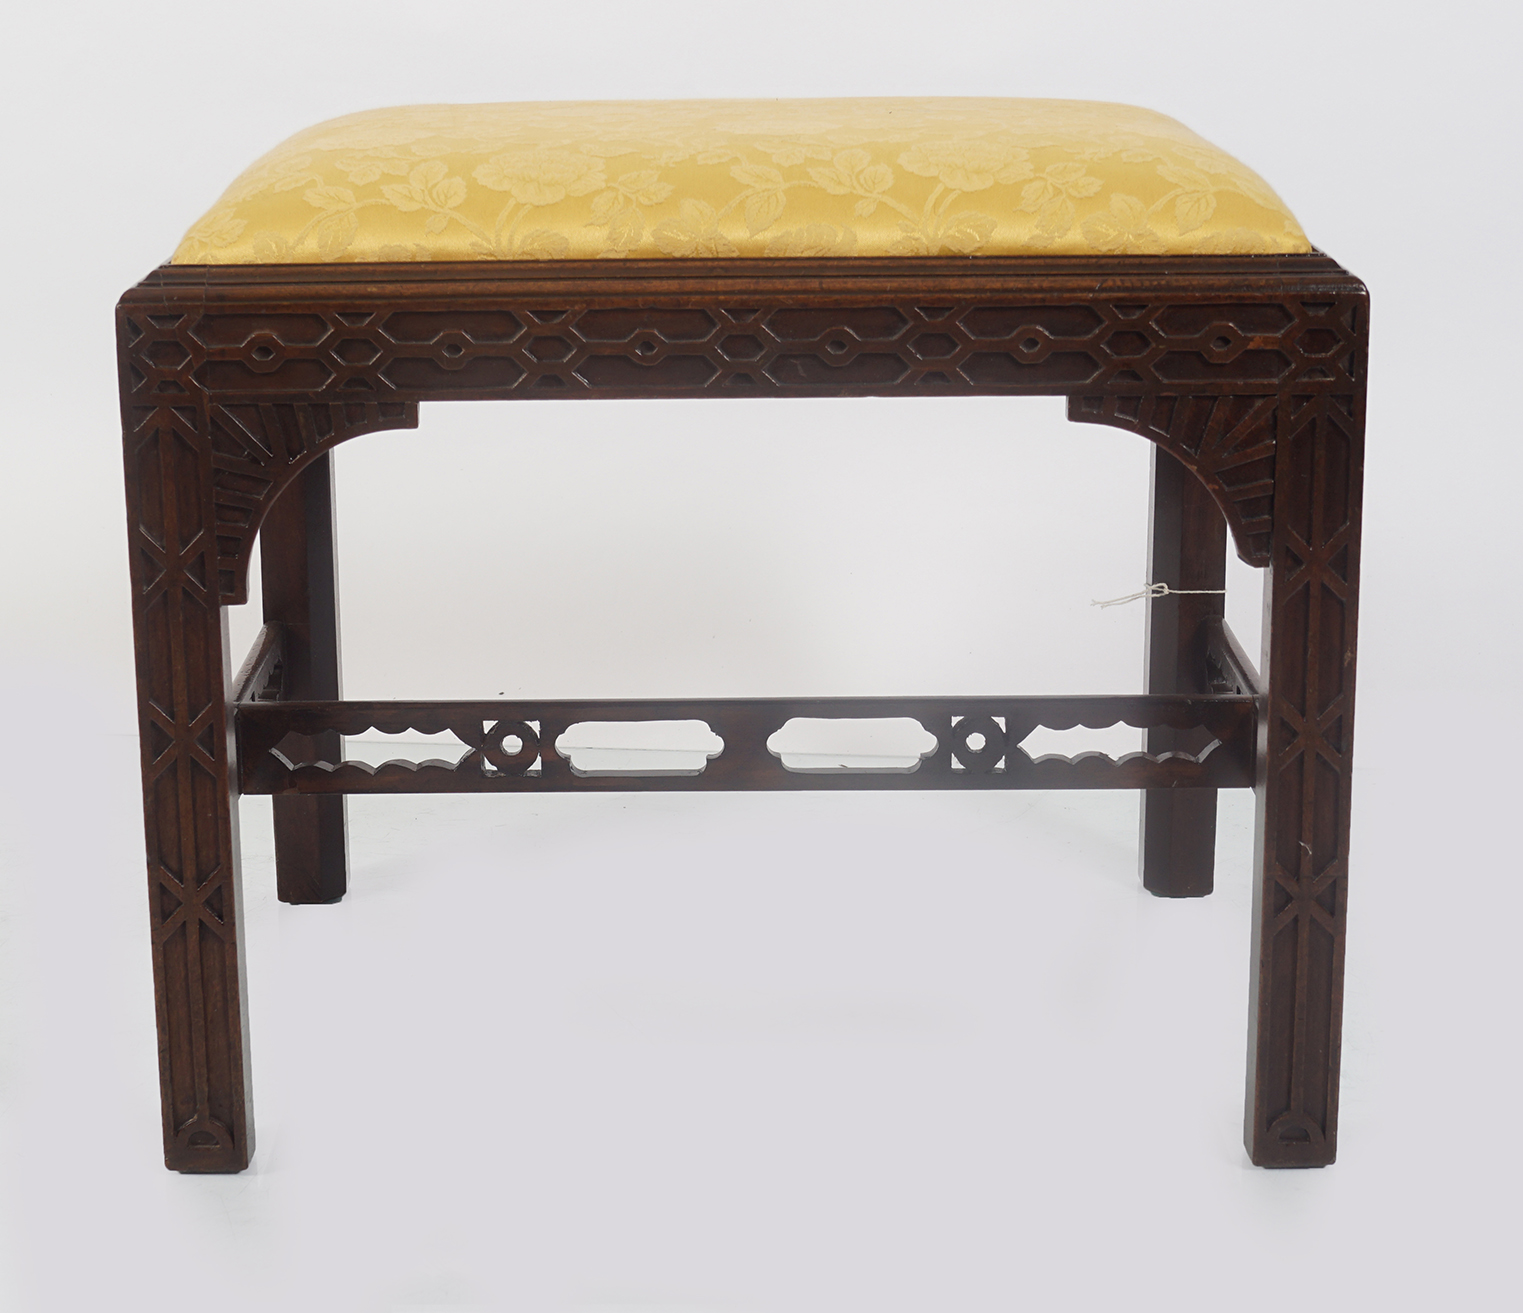 GEORGE III PERIOD MAHOGANY CHIPPENDALE STOOL - Image 2 of 3